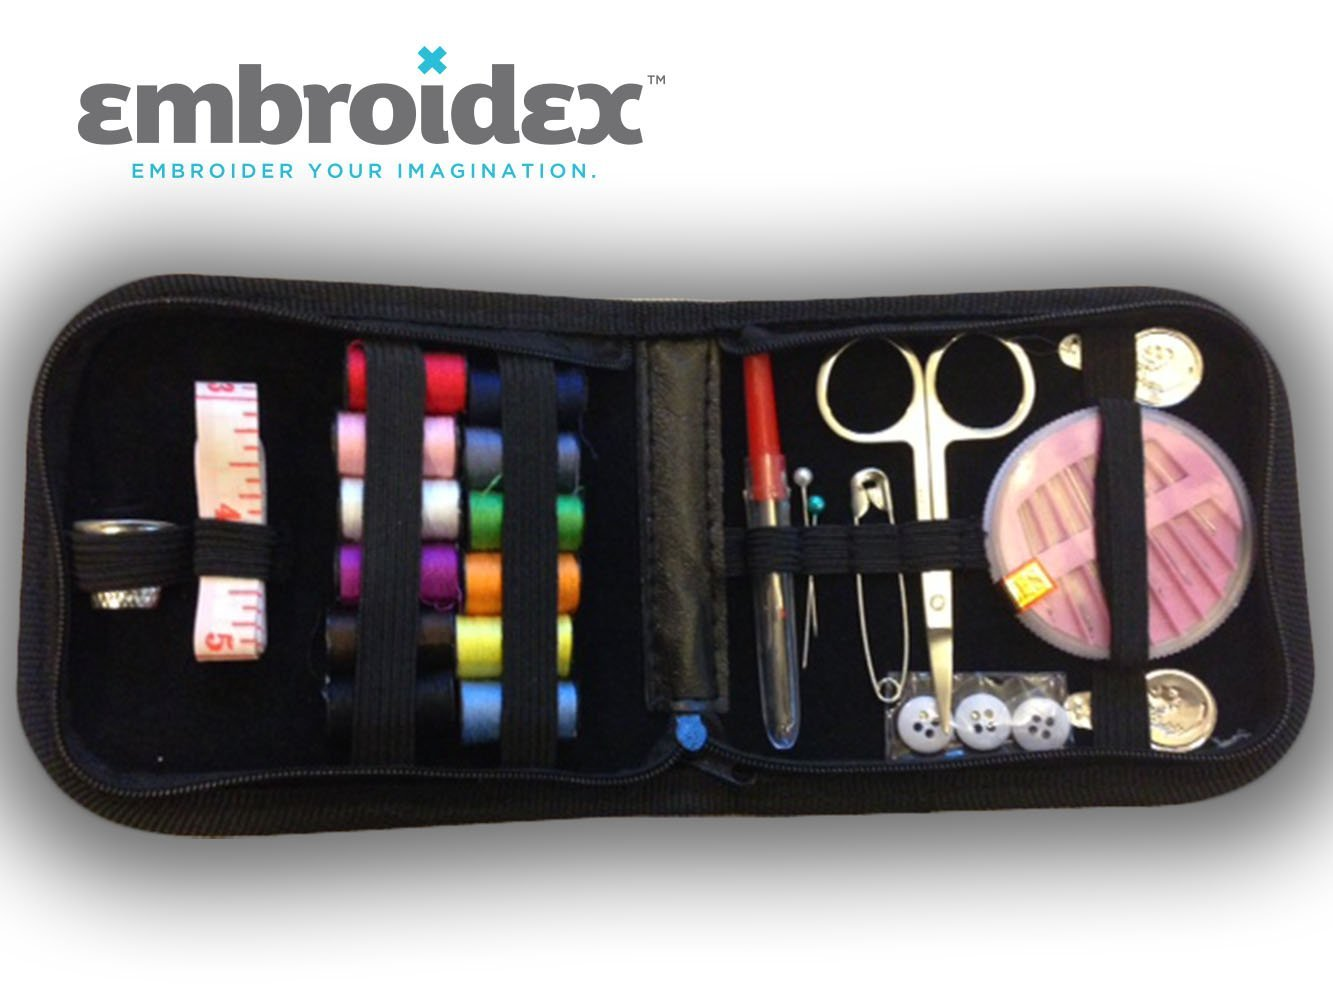 sewing kits best available on Amazon under $15 embroidex home travel emergencies quality notions